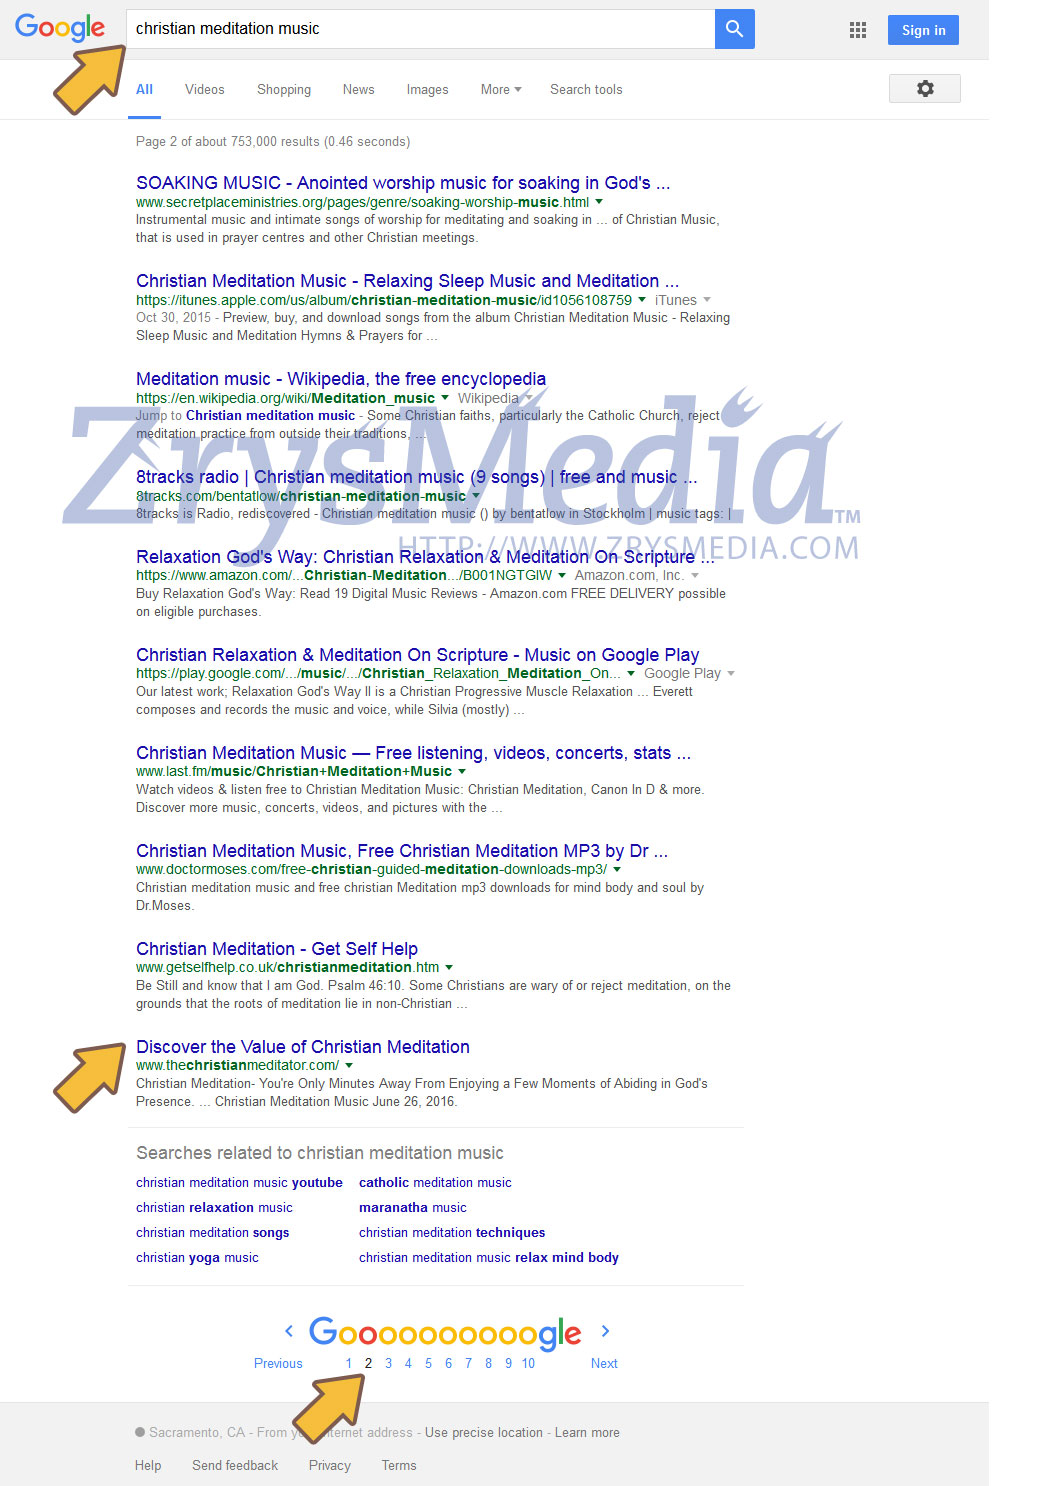 Our Client Rhonda was on page 4 before uploading and submitting our information Hub to Google later the same day